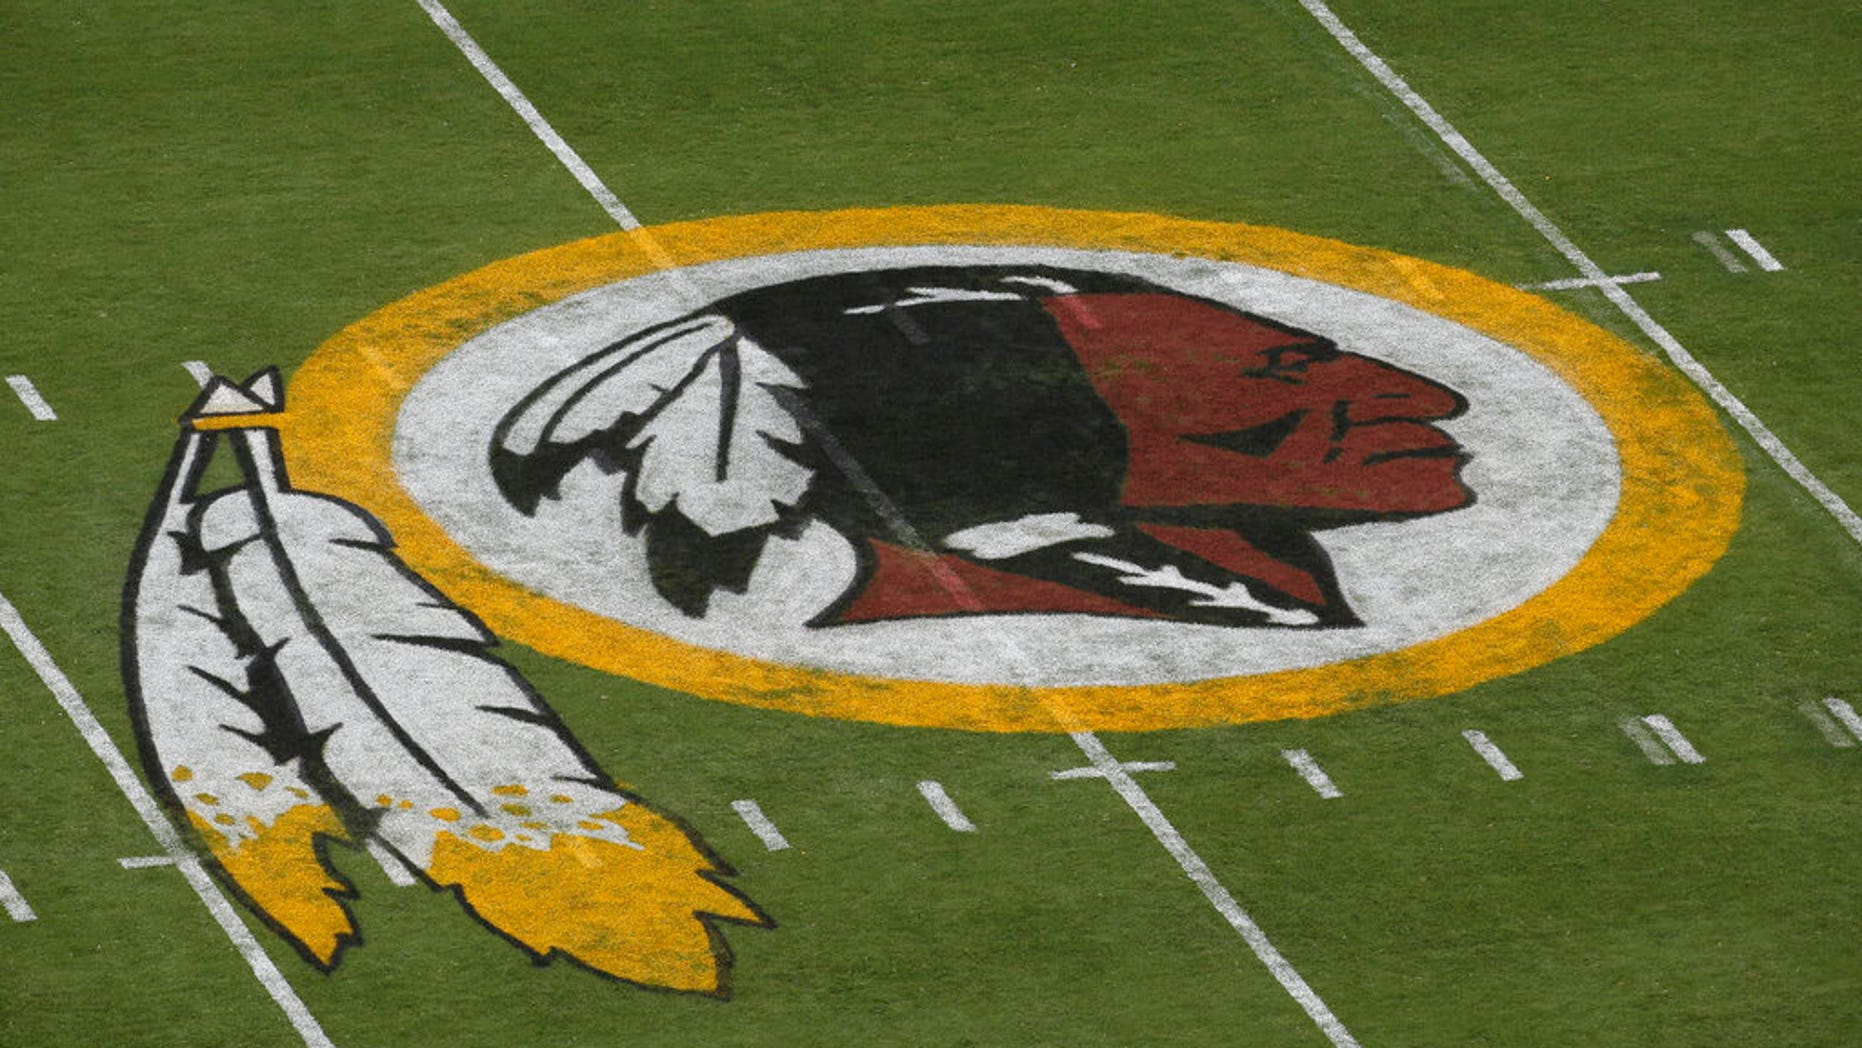 Washington's National Football League team will reportedly drop racist nickname on Monday